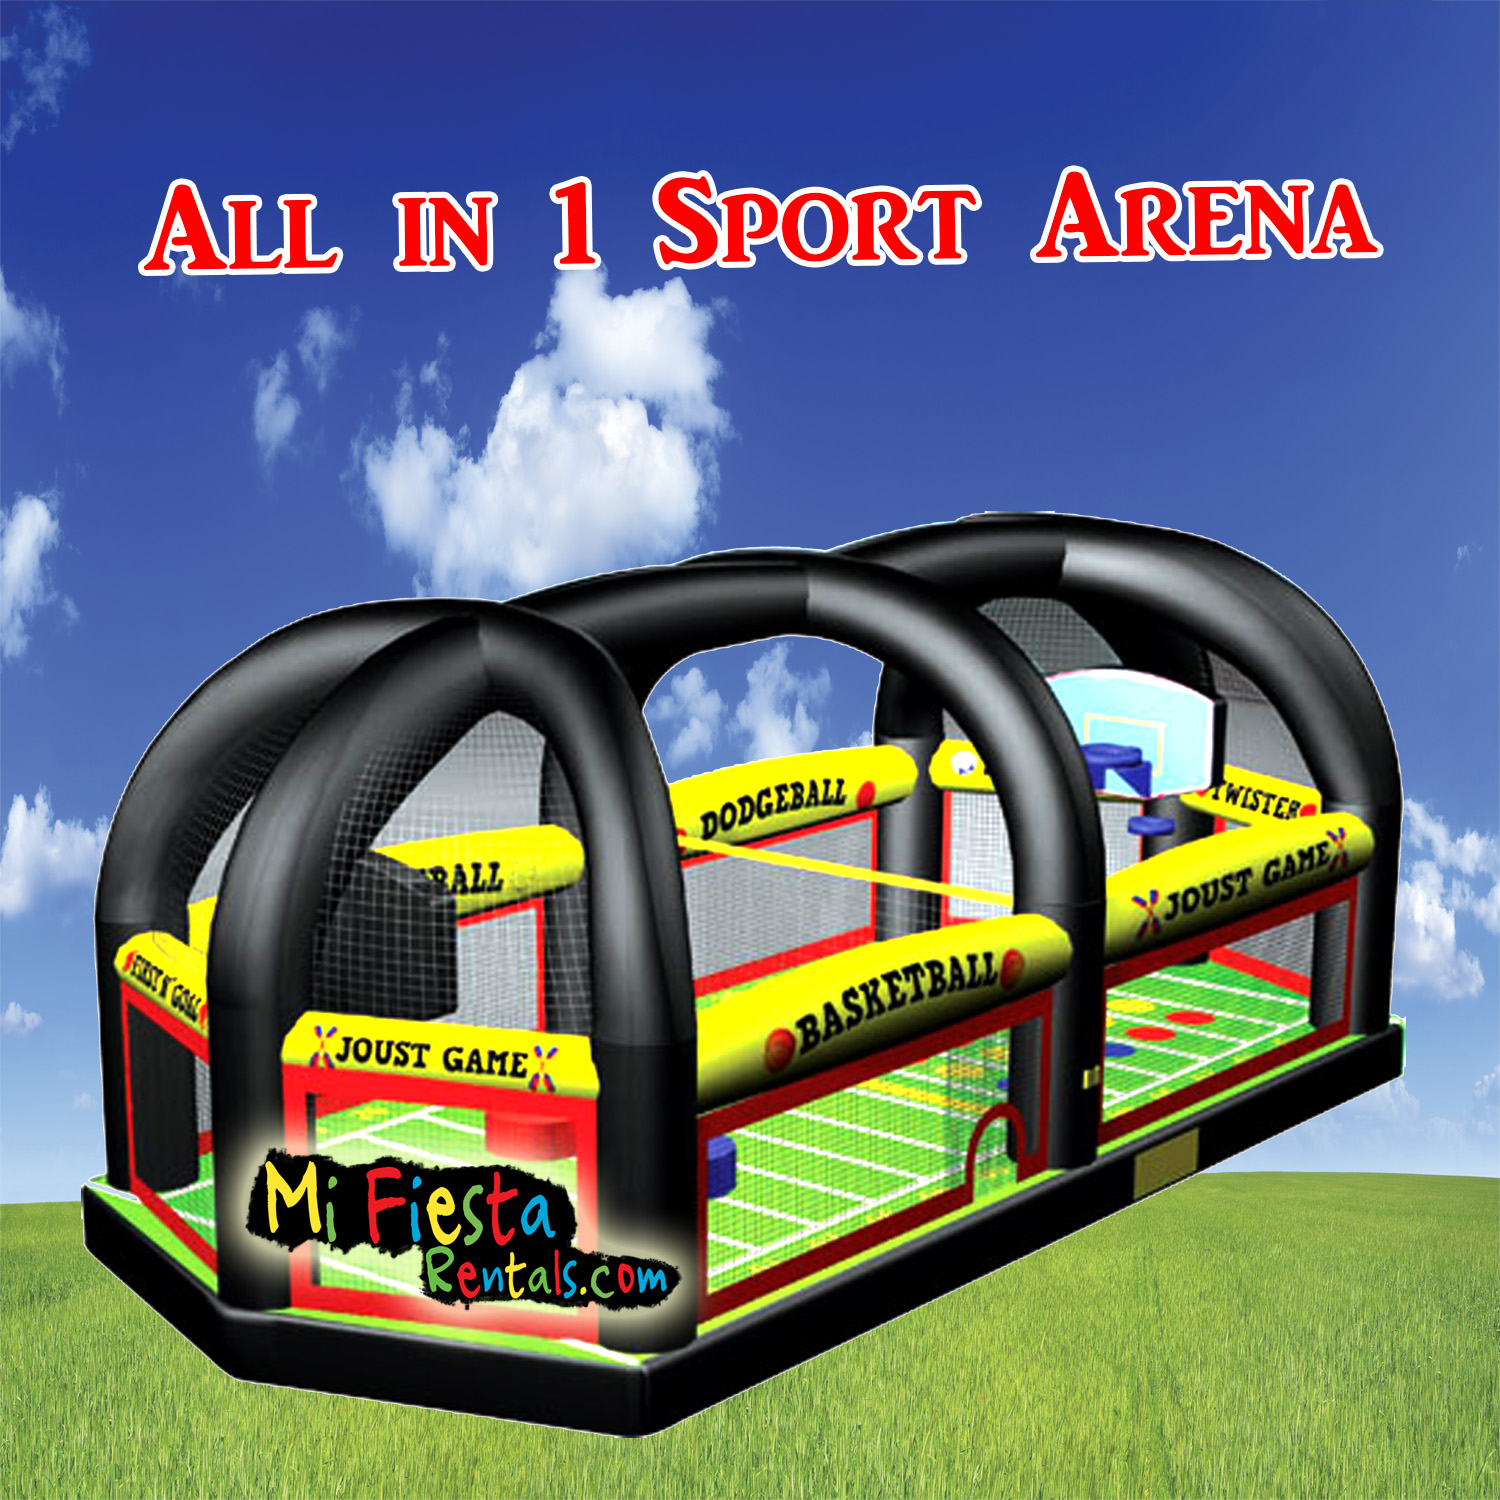 All in 1 Sport Arena